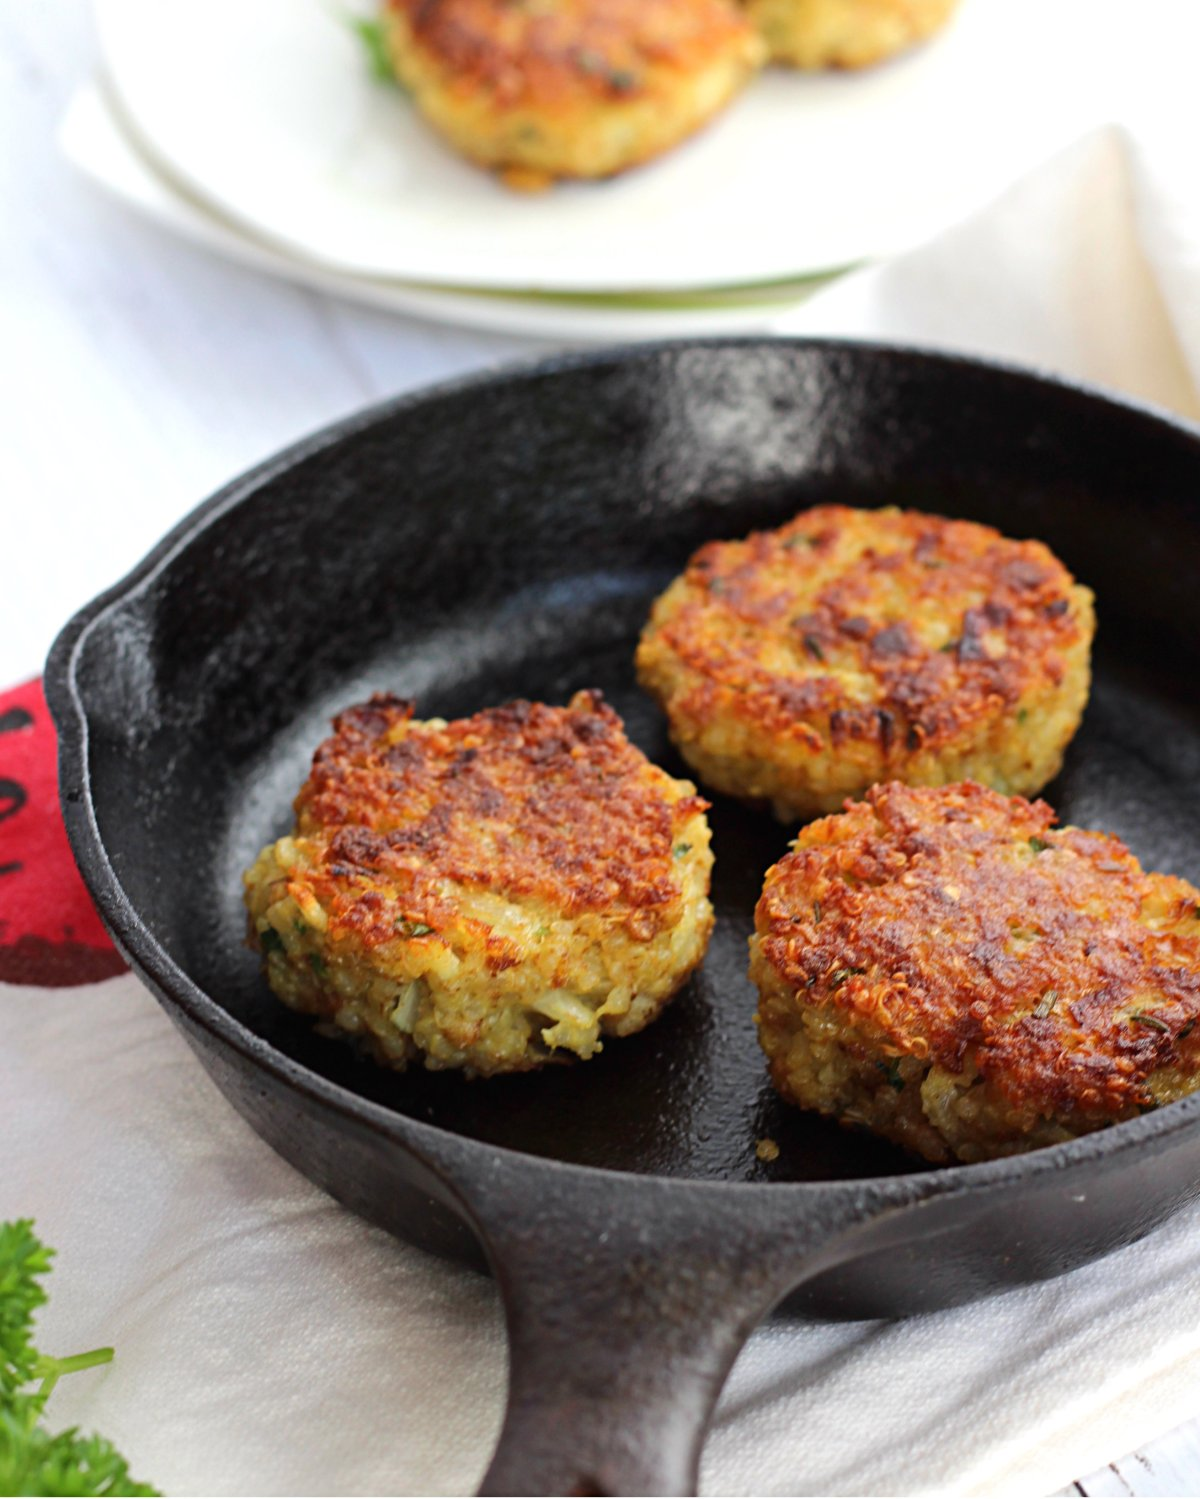 Healthy Quinoa Patties with Parmesan and Chives. Great way to get kids to eat quinoa!